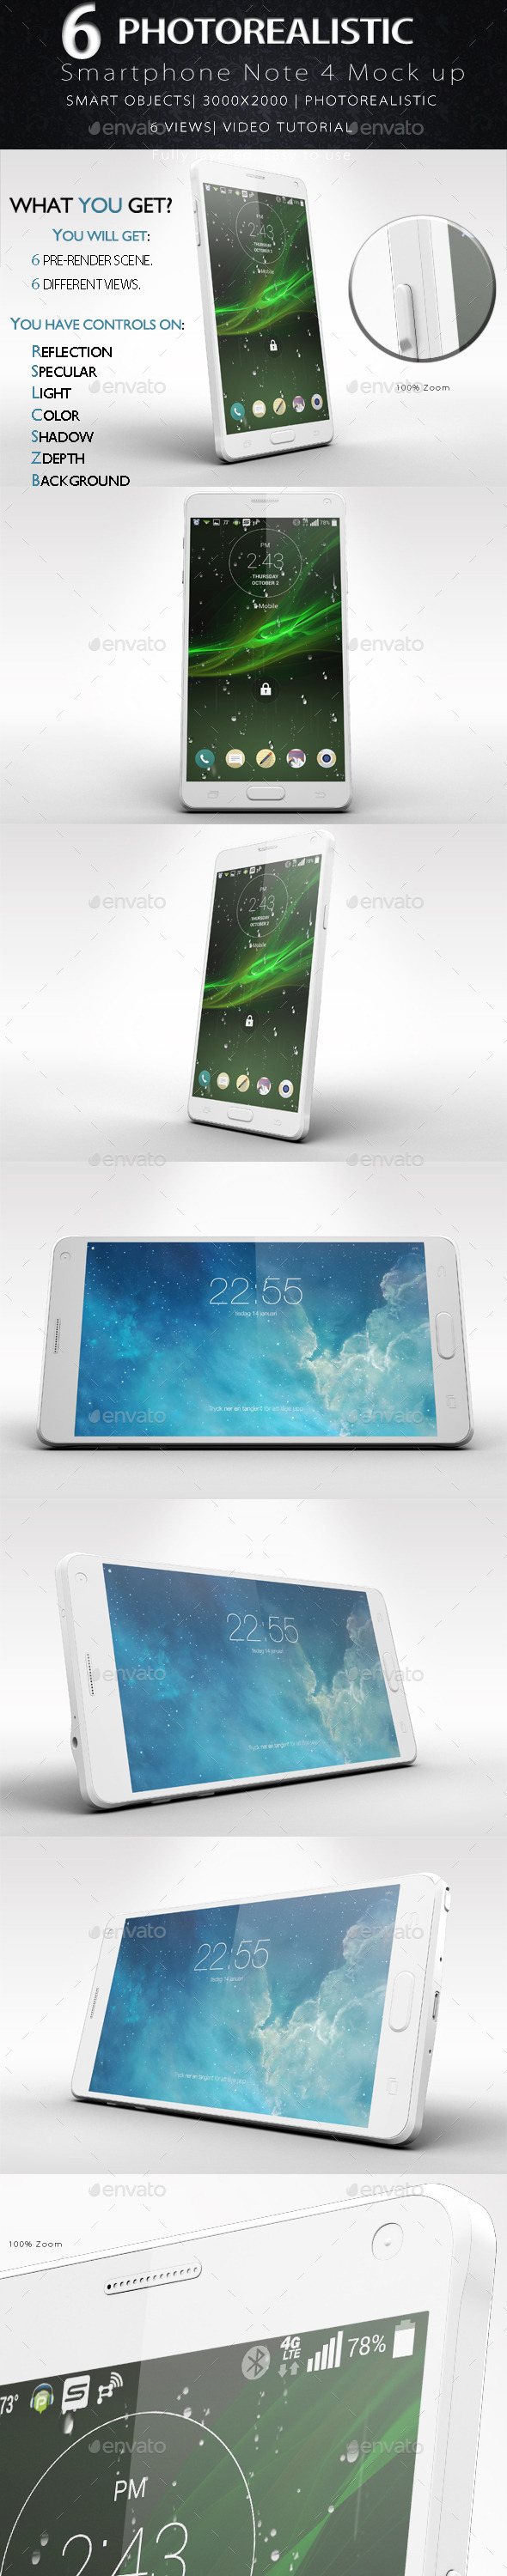 Galaxy Note 4 Smartphone Mock Up Vol.2 - Product Mock-Ups Graphics